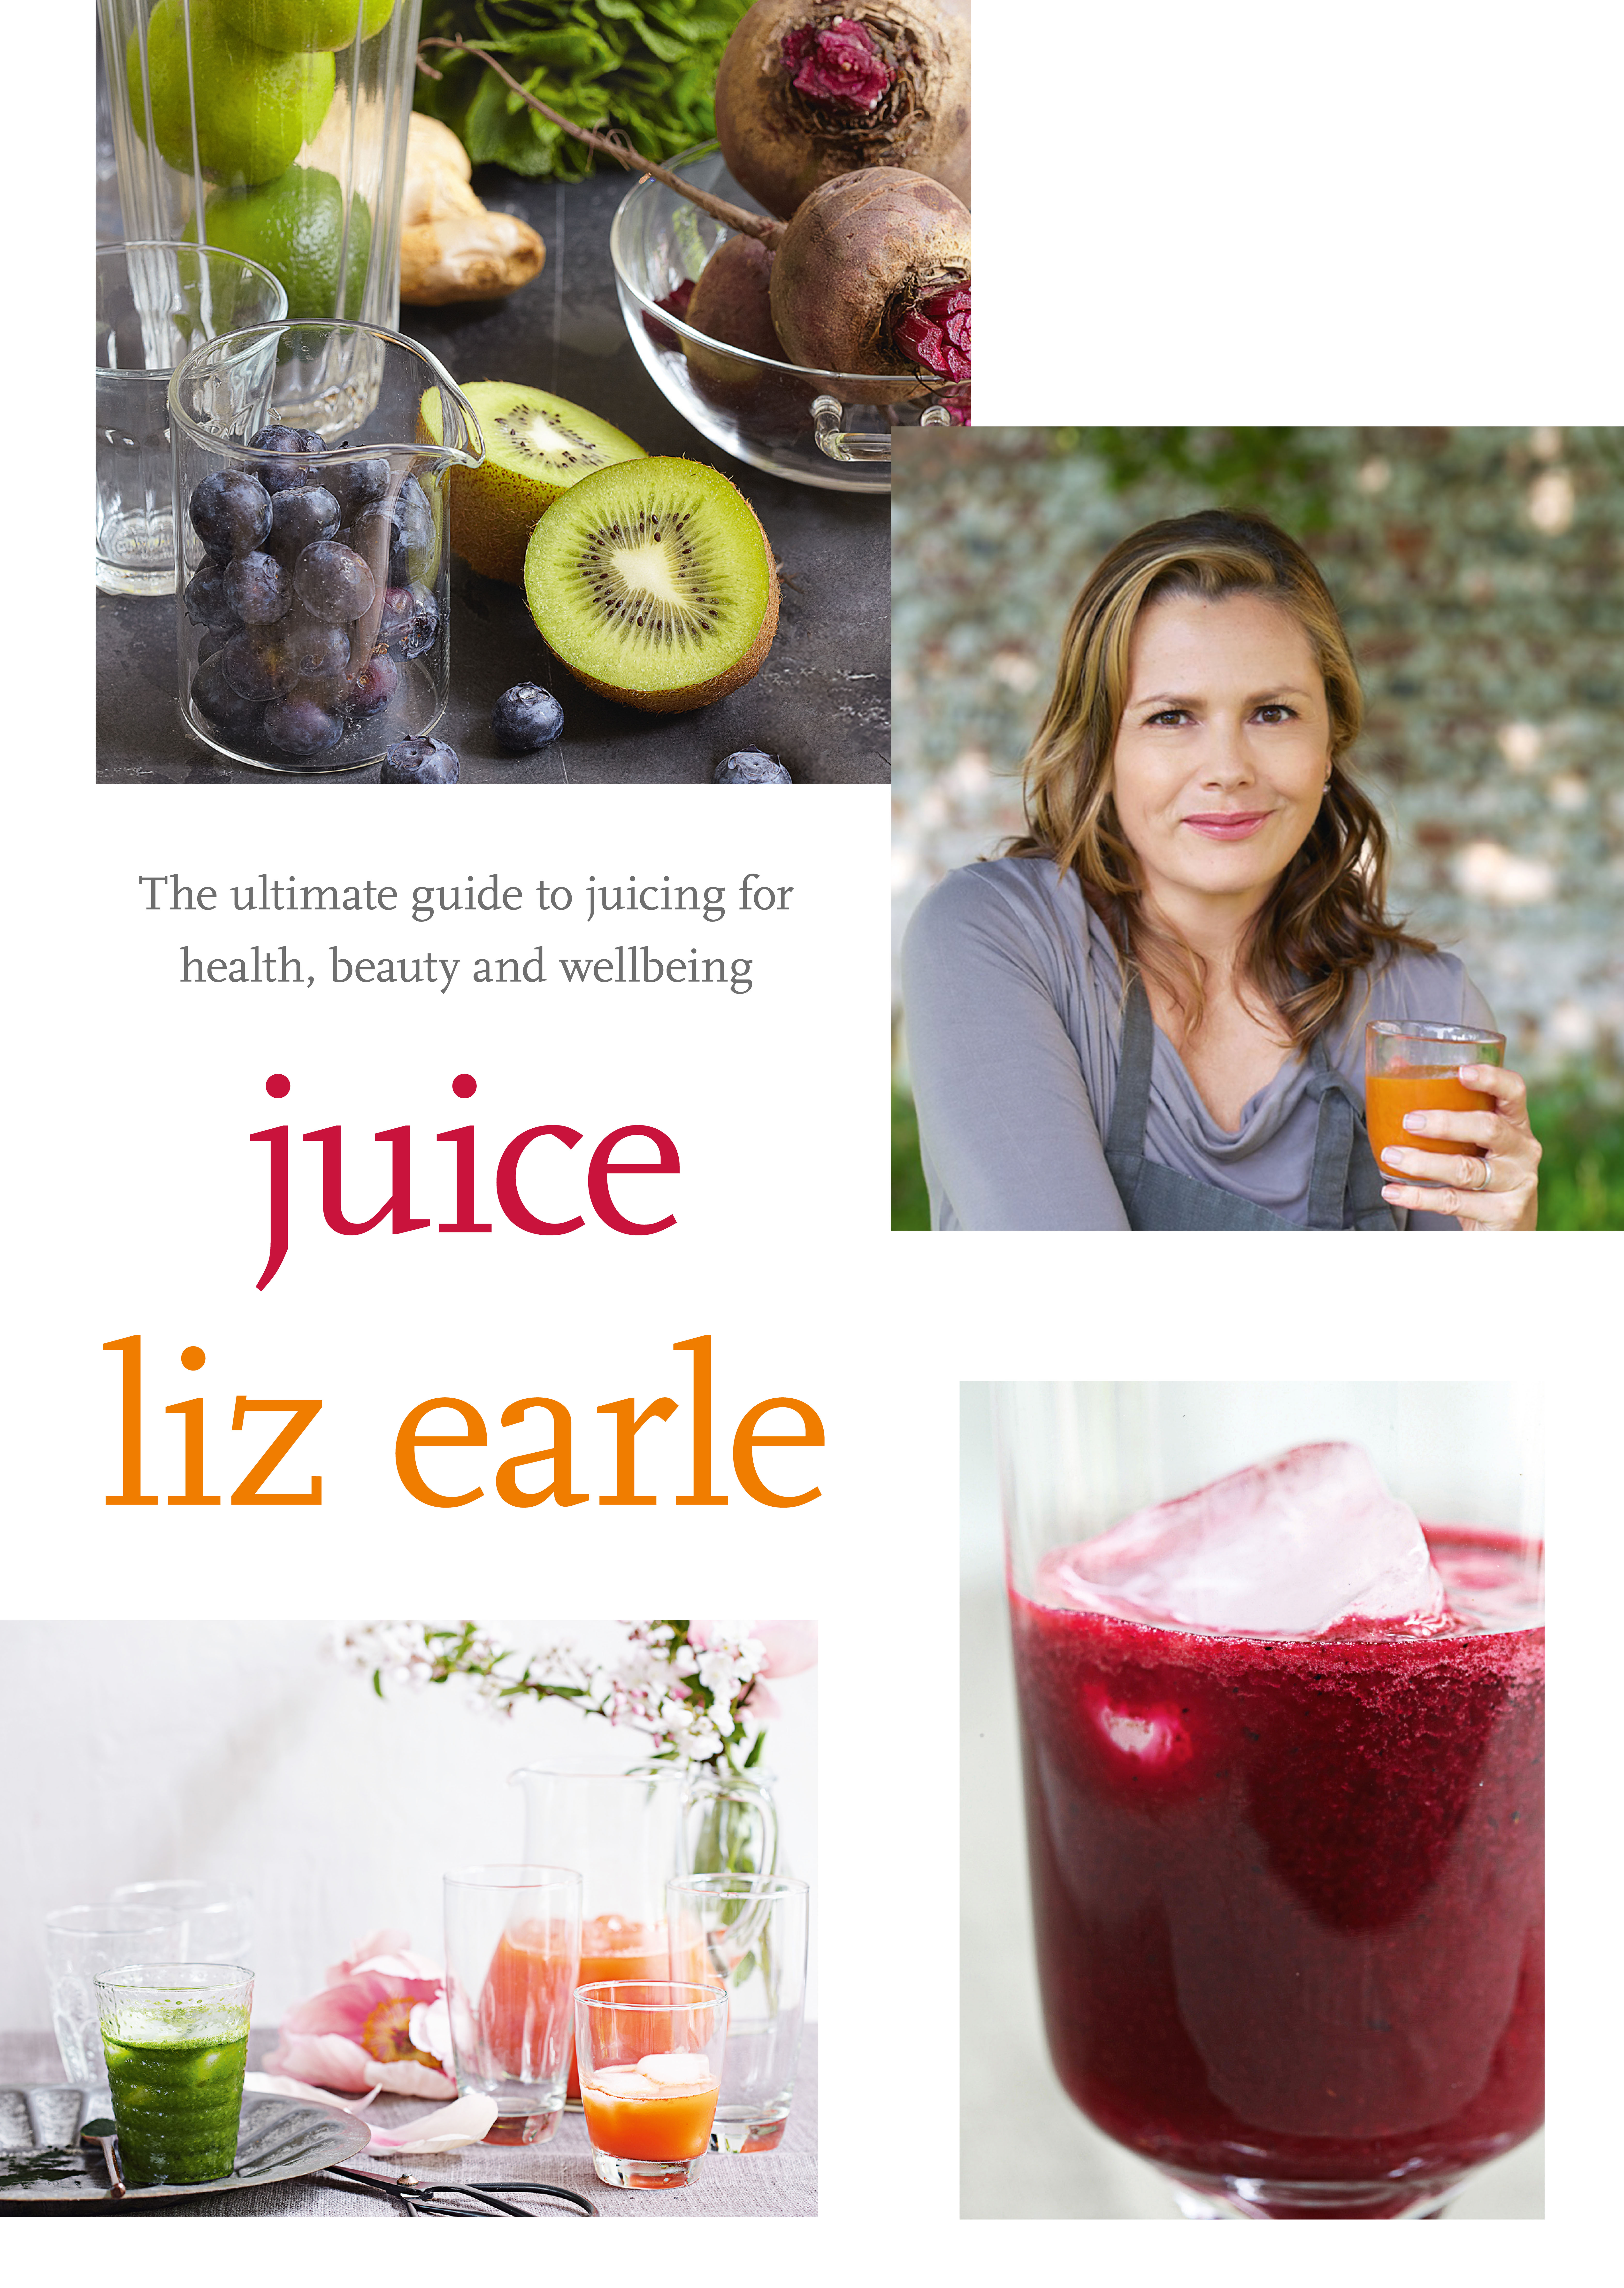 Juice front cover